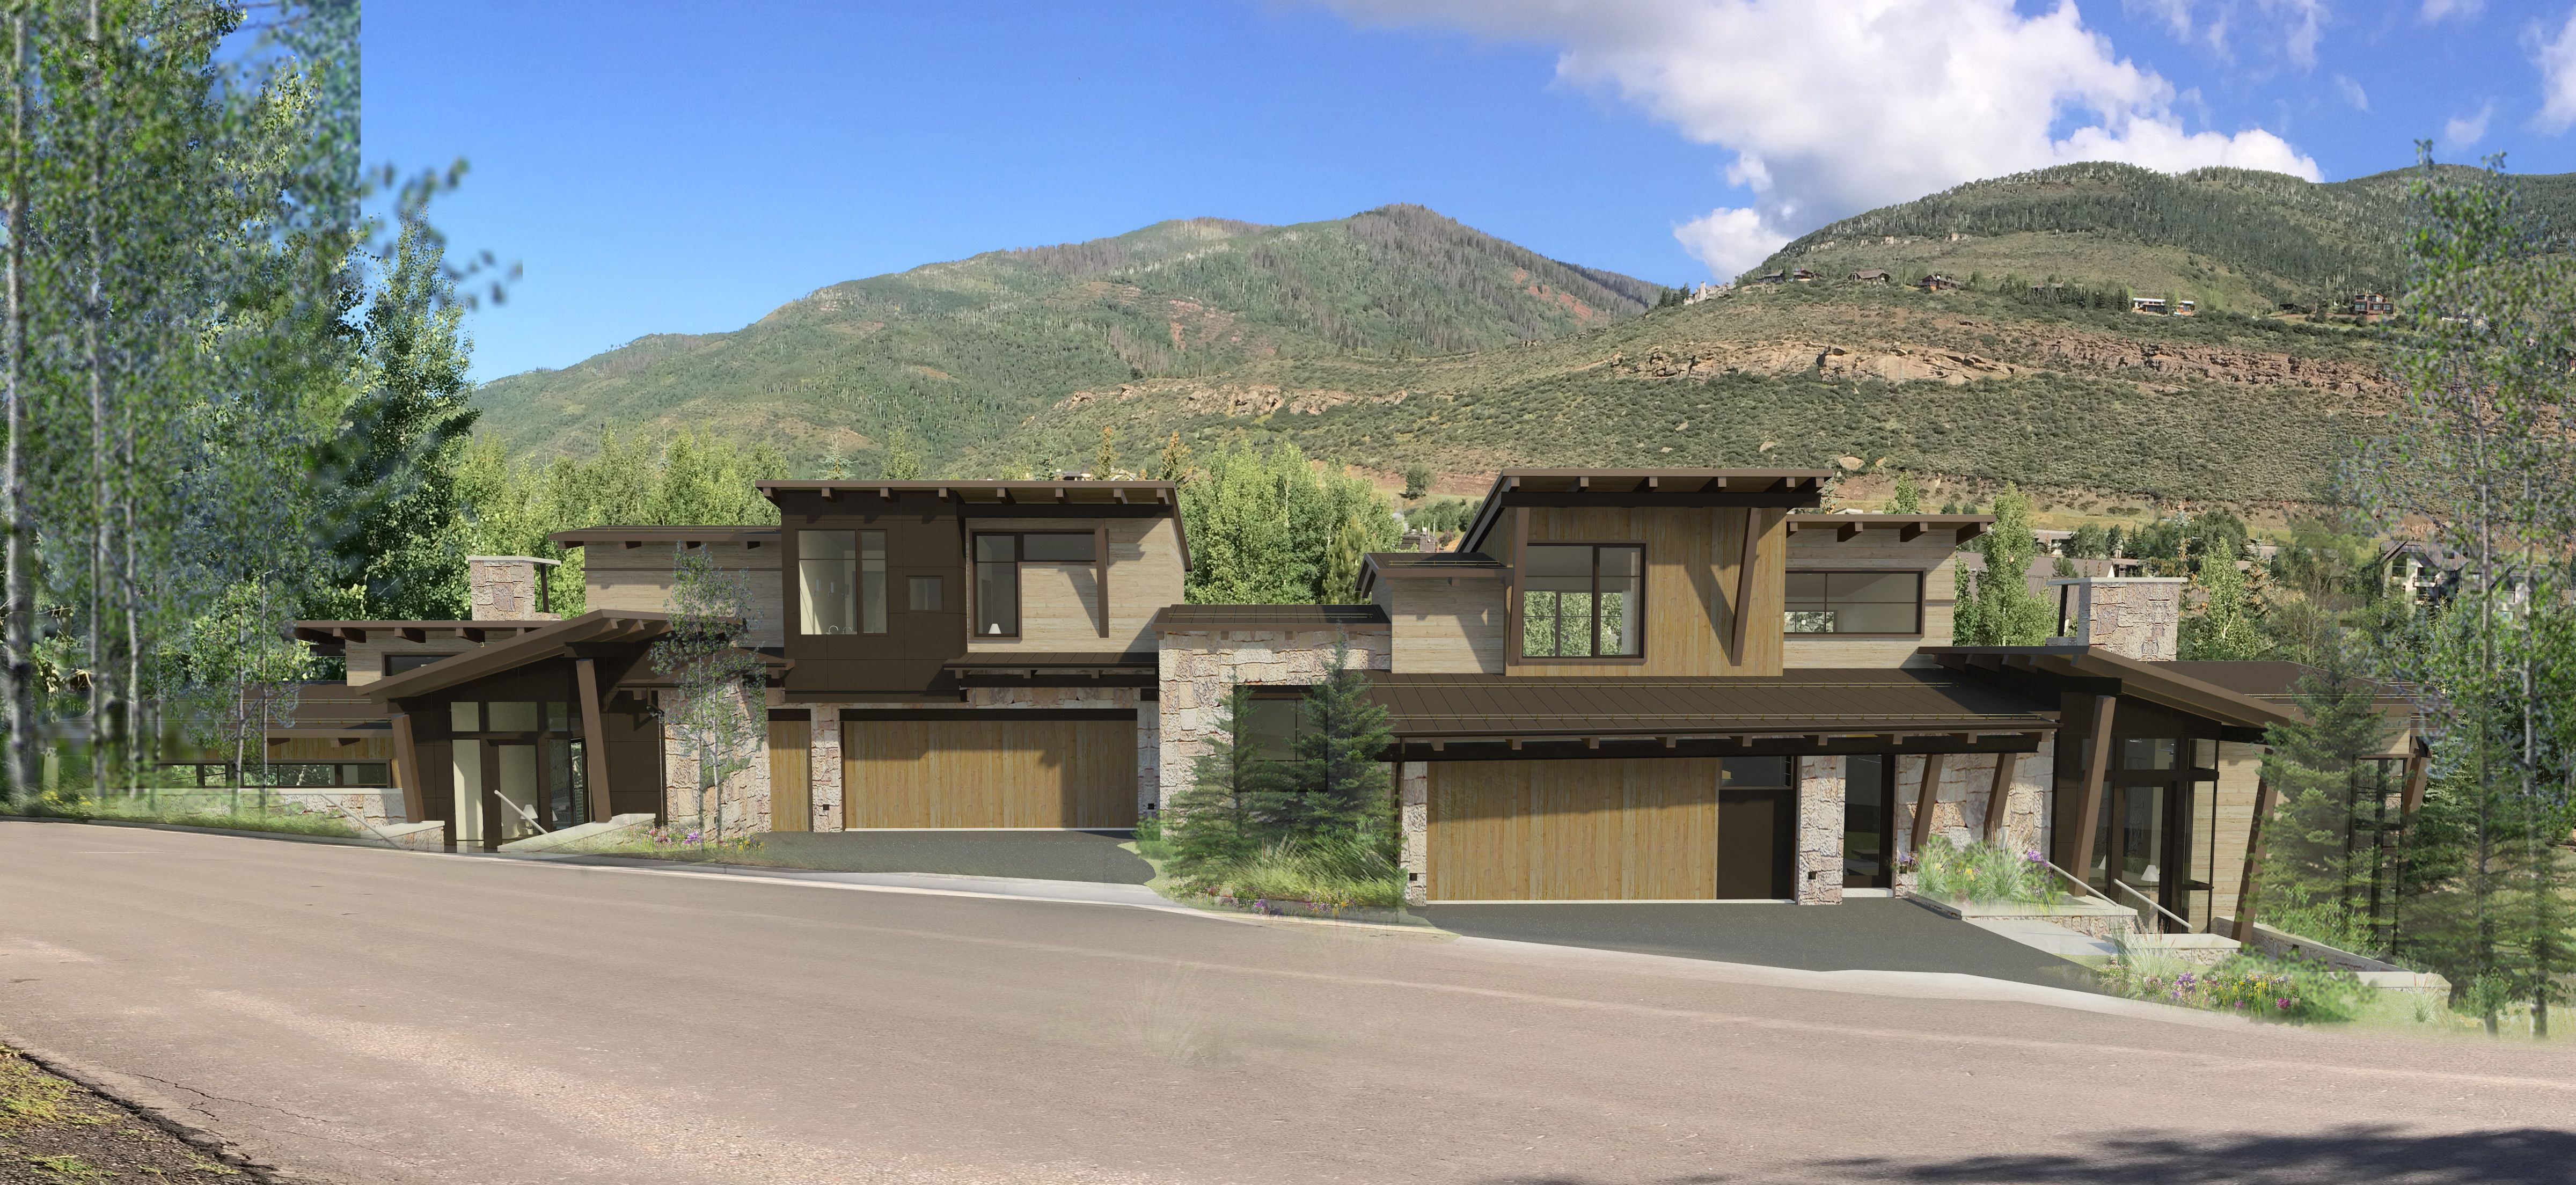 1226 Westhaven Circle # West Vail, CO 81657